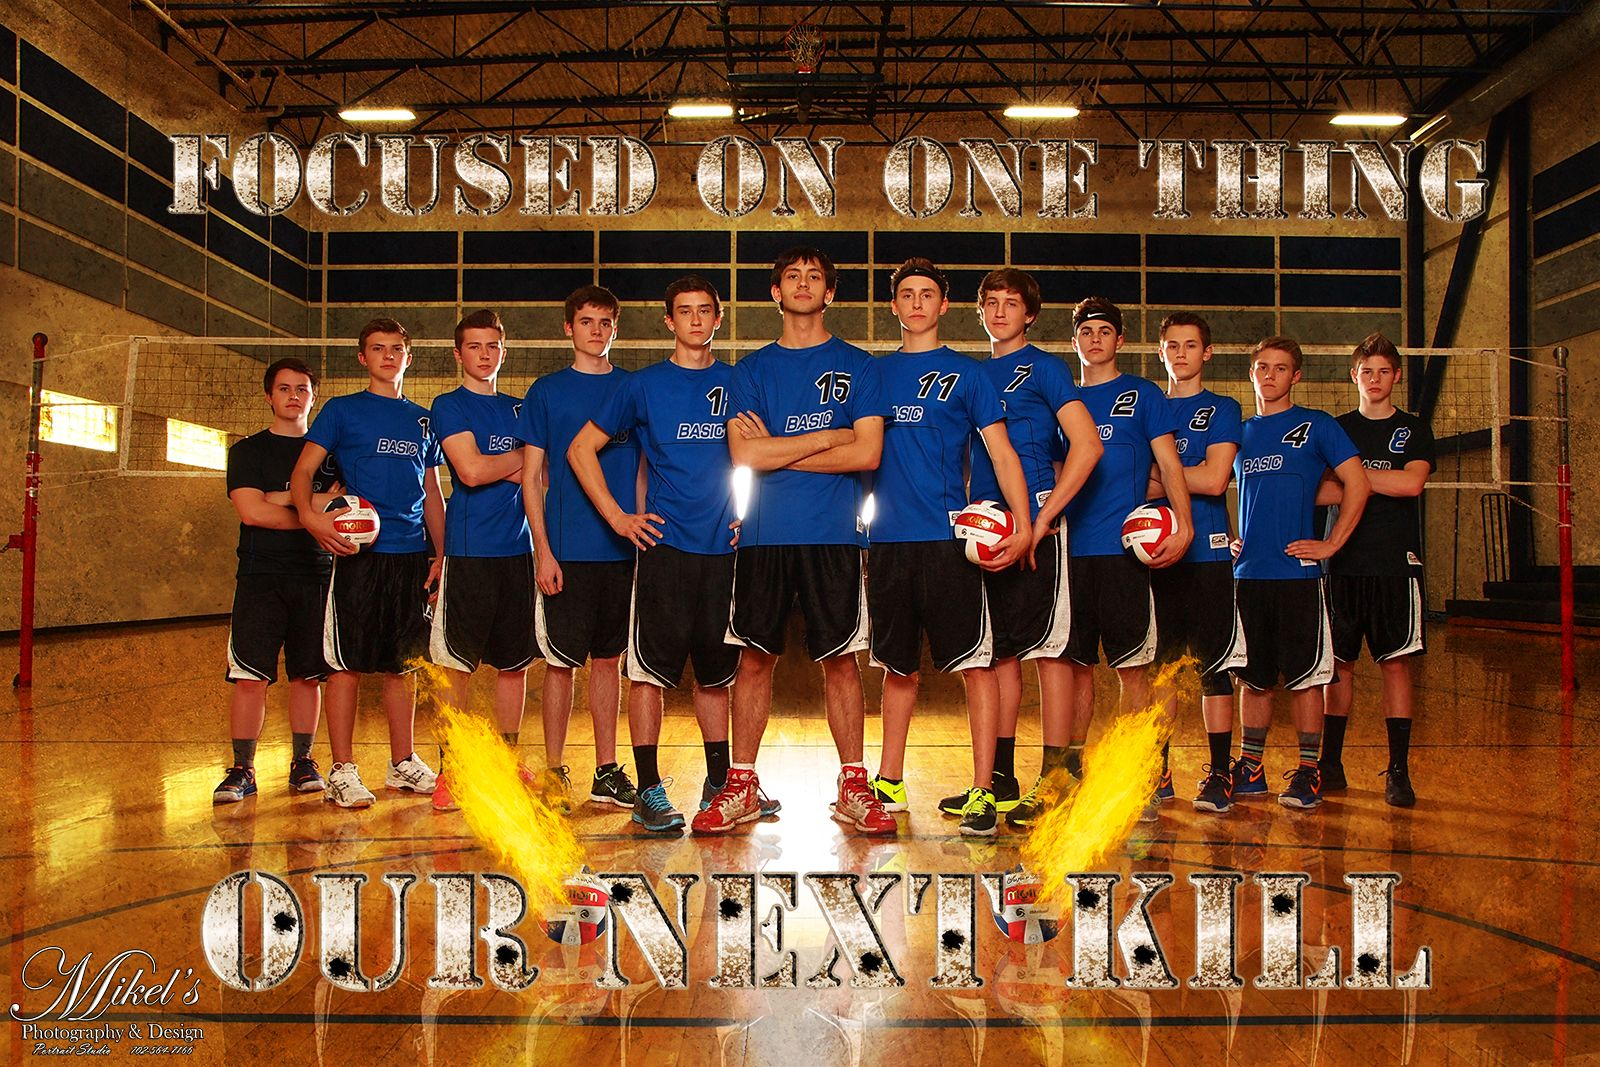 Bhs Men S Volleyball Team Mikel S Photography Design Www Mikelsphotography Com 702 564 7166 Mens Volleyball Volleyball Posters Volleyball Team